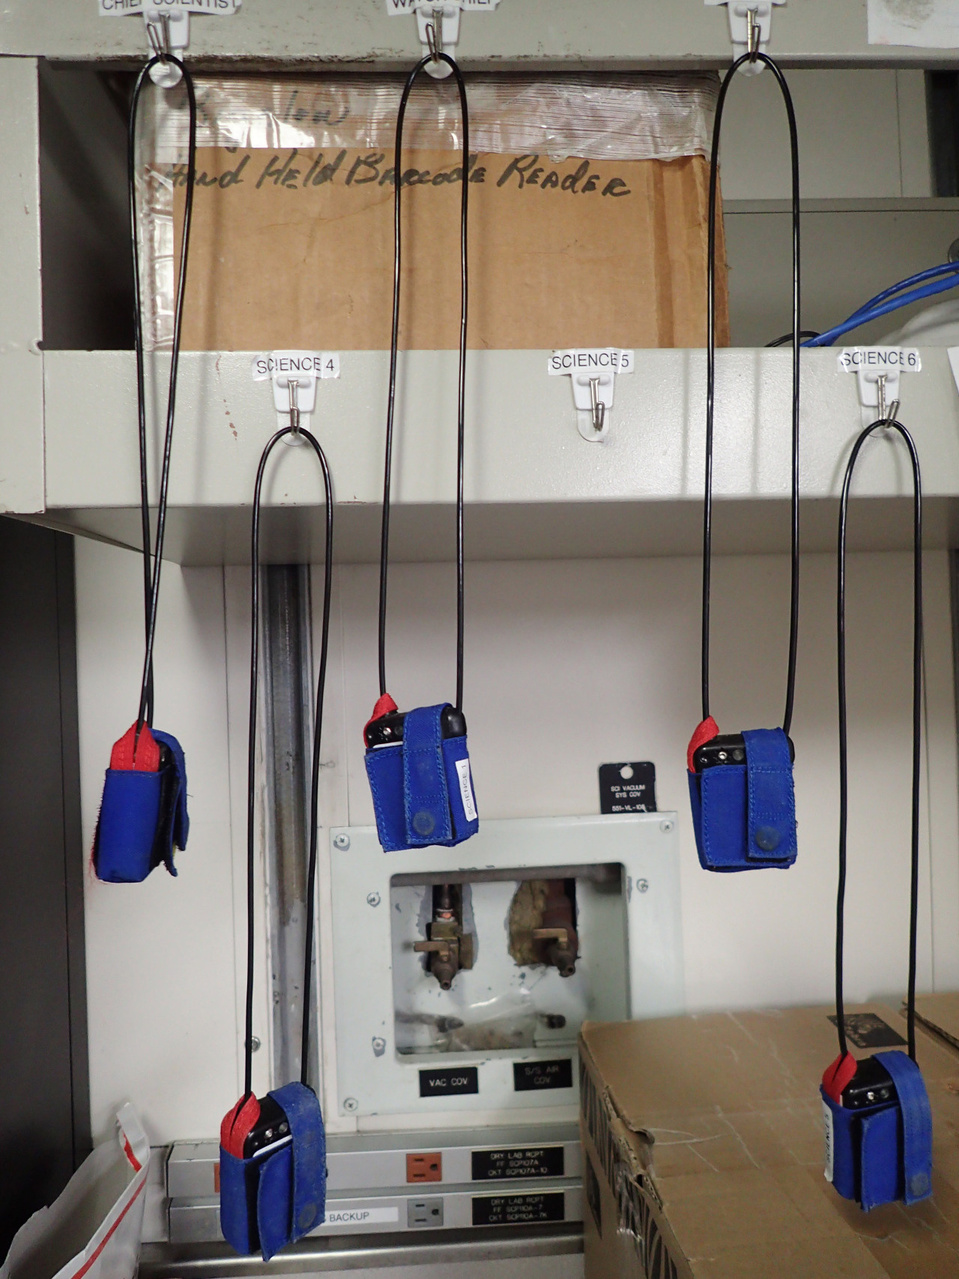 MOB's (man overboard beacons) hanging from beams